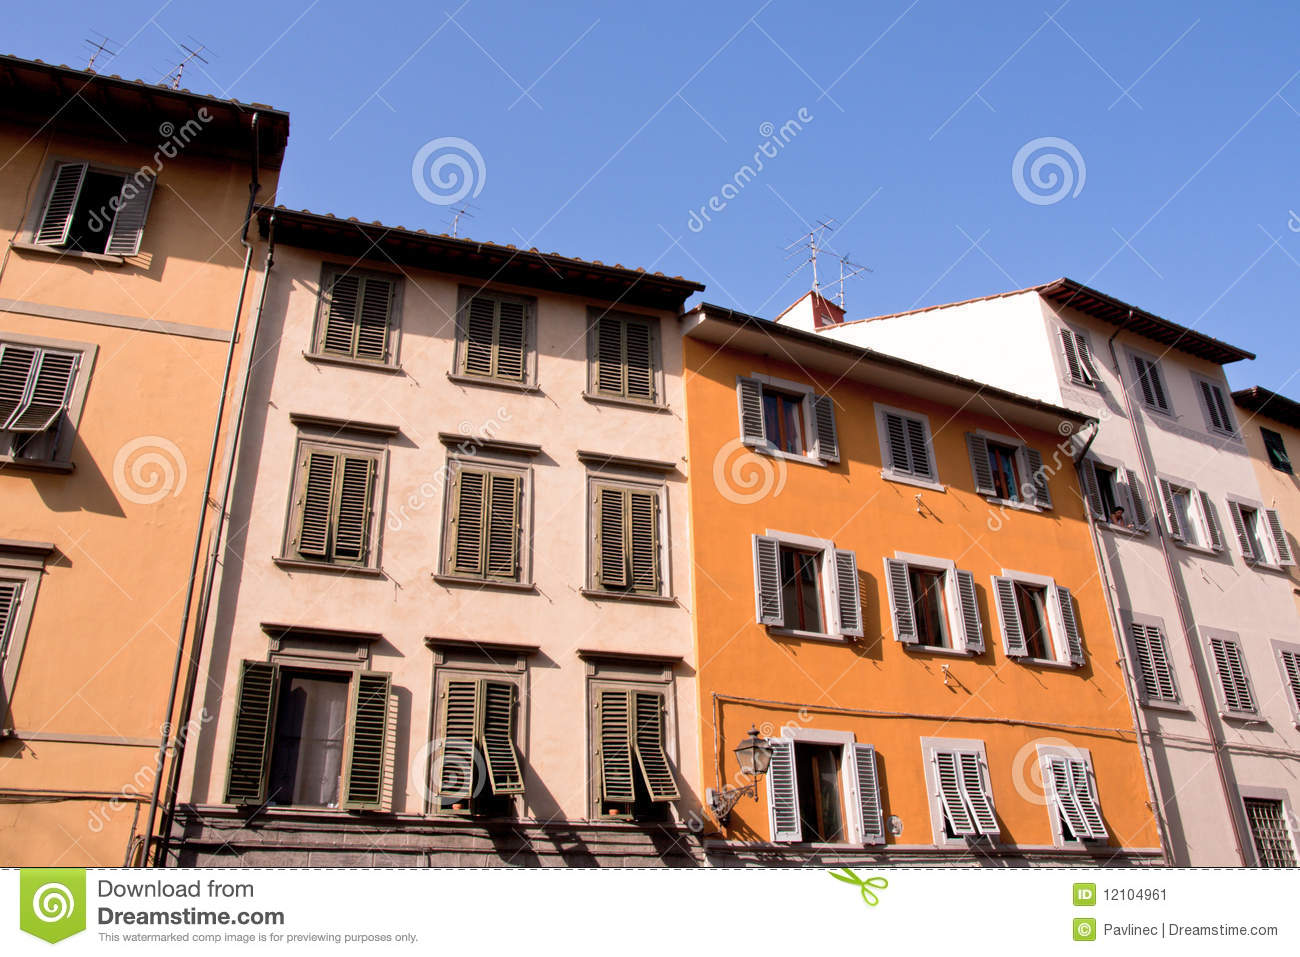 tuscan historic architecture stock image - image: 12104961